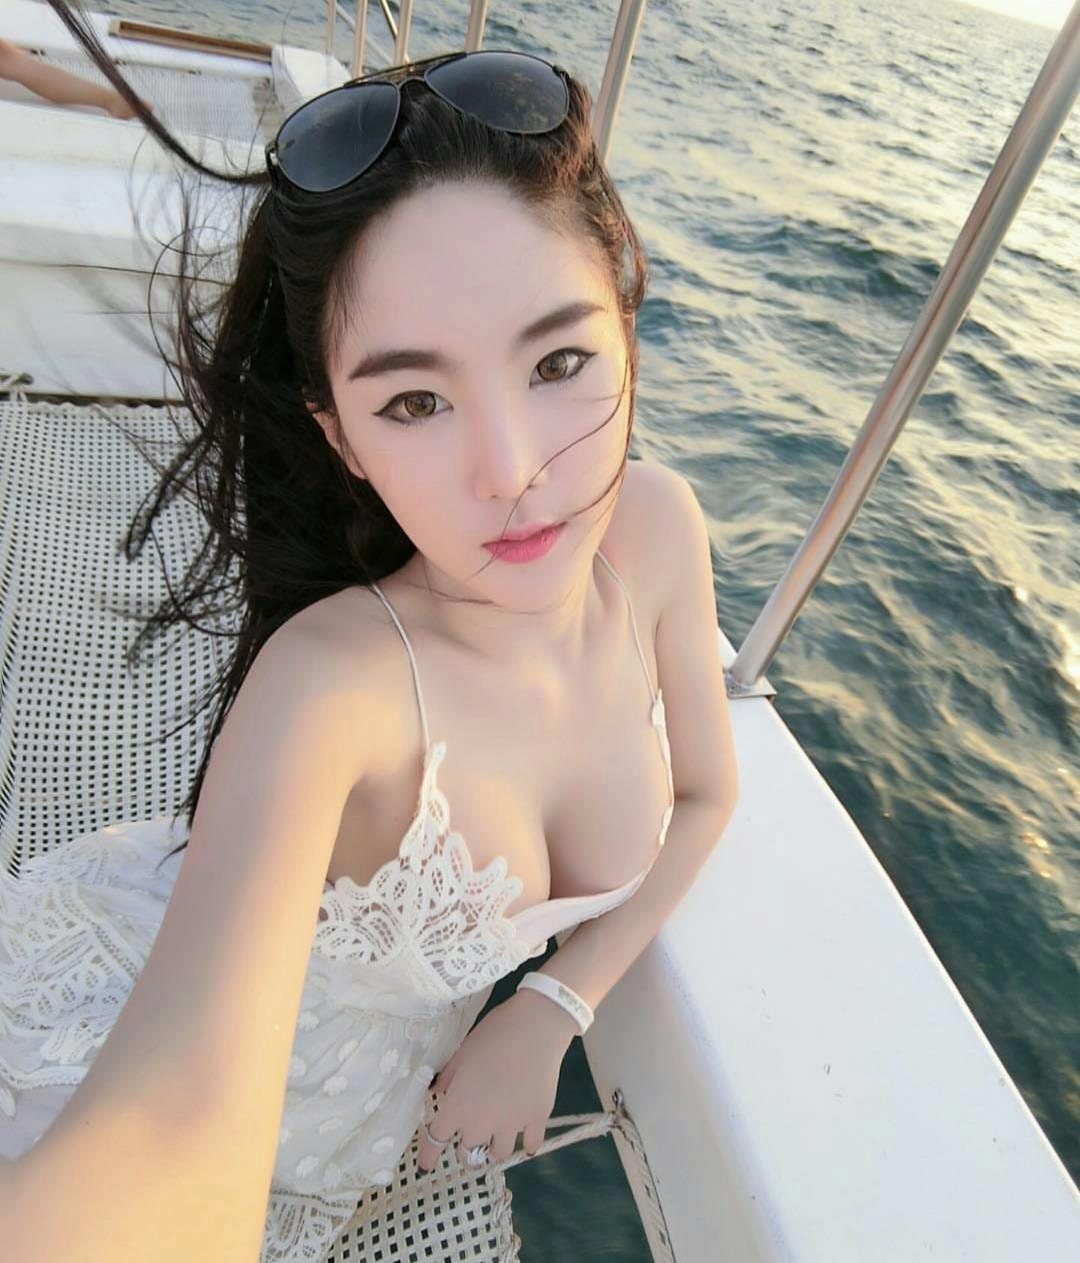 Thai dating sites